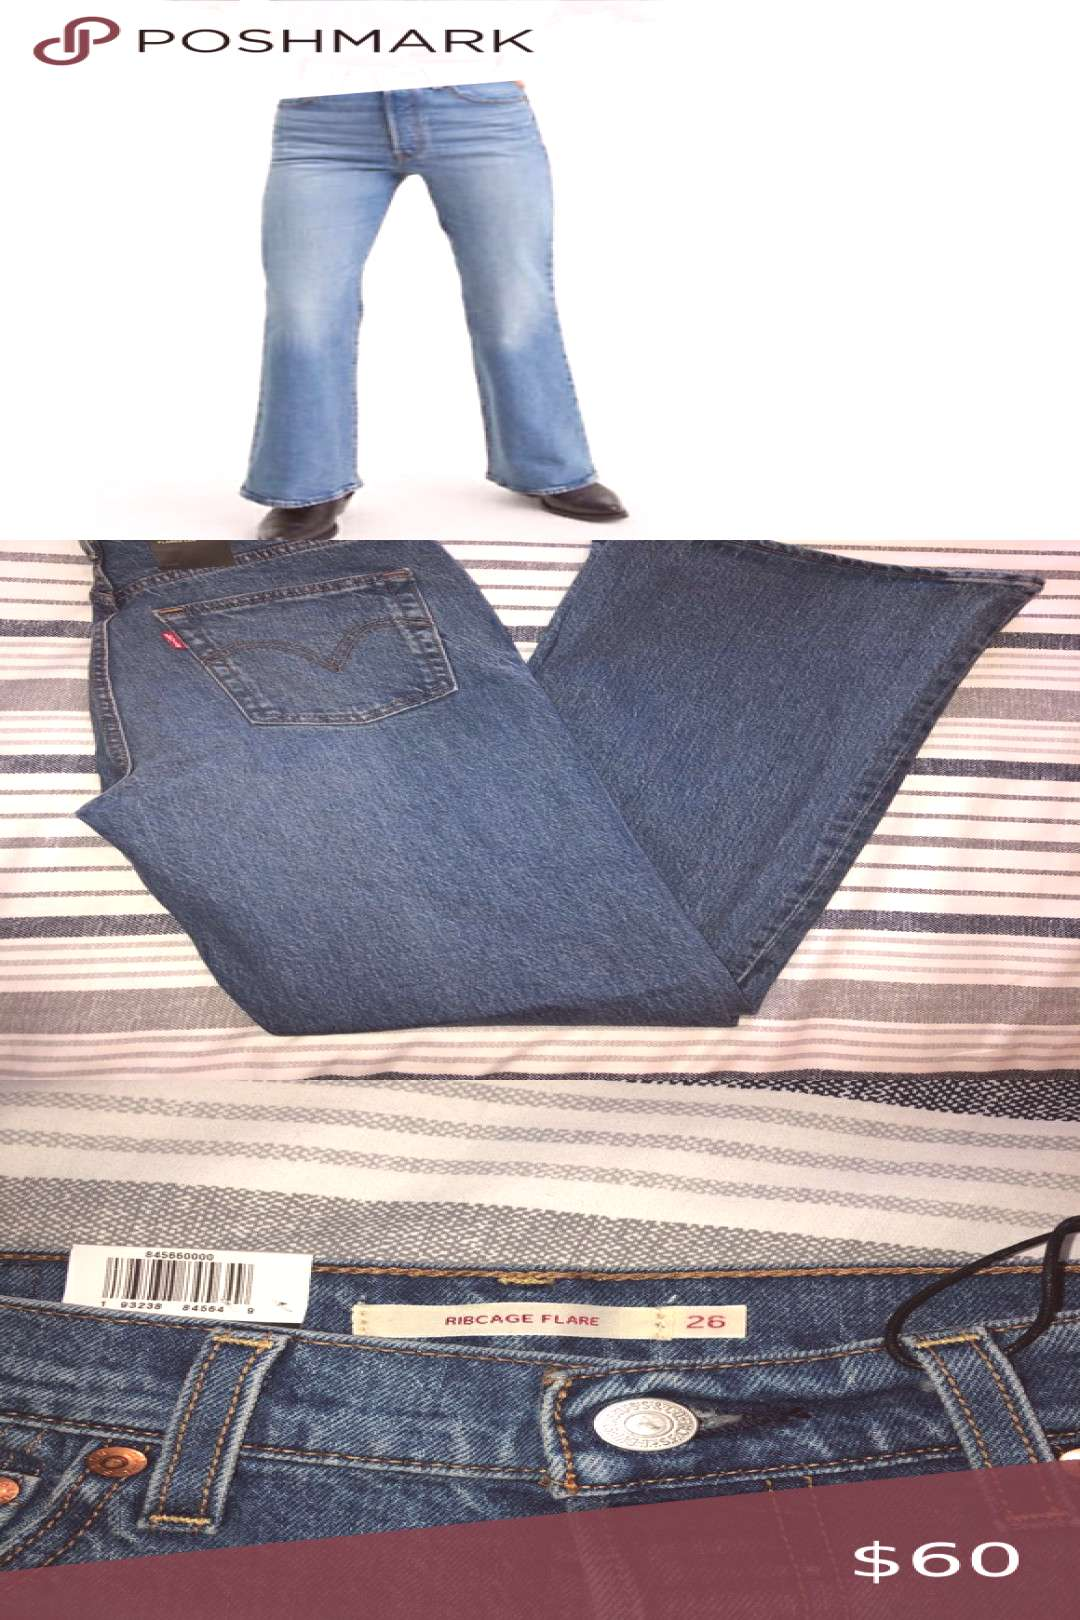 Levi flare jeans Levi ribcage flare in retro style blue. Super cute and in style... Levi flare jean